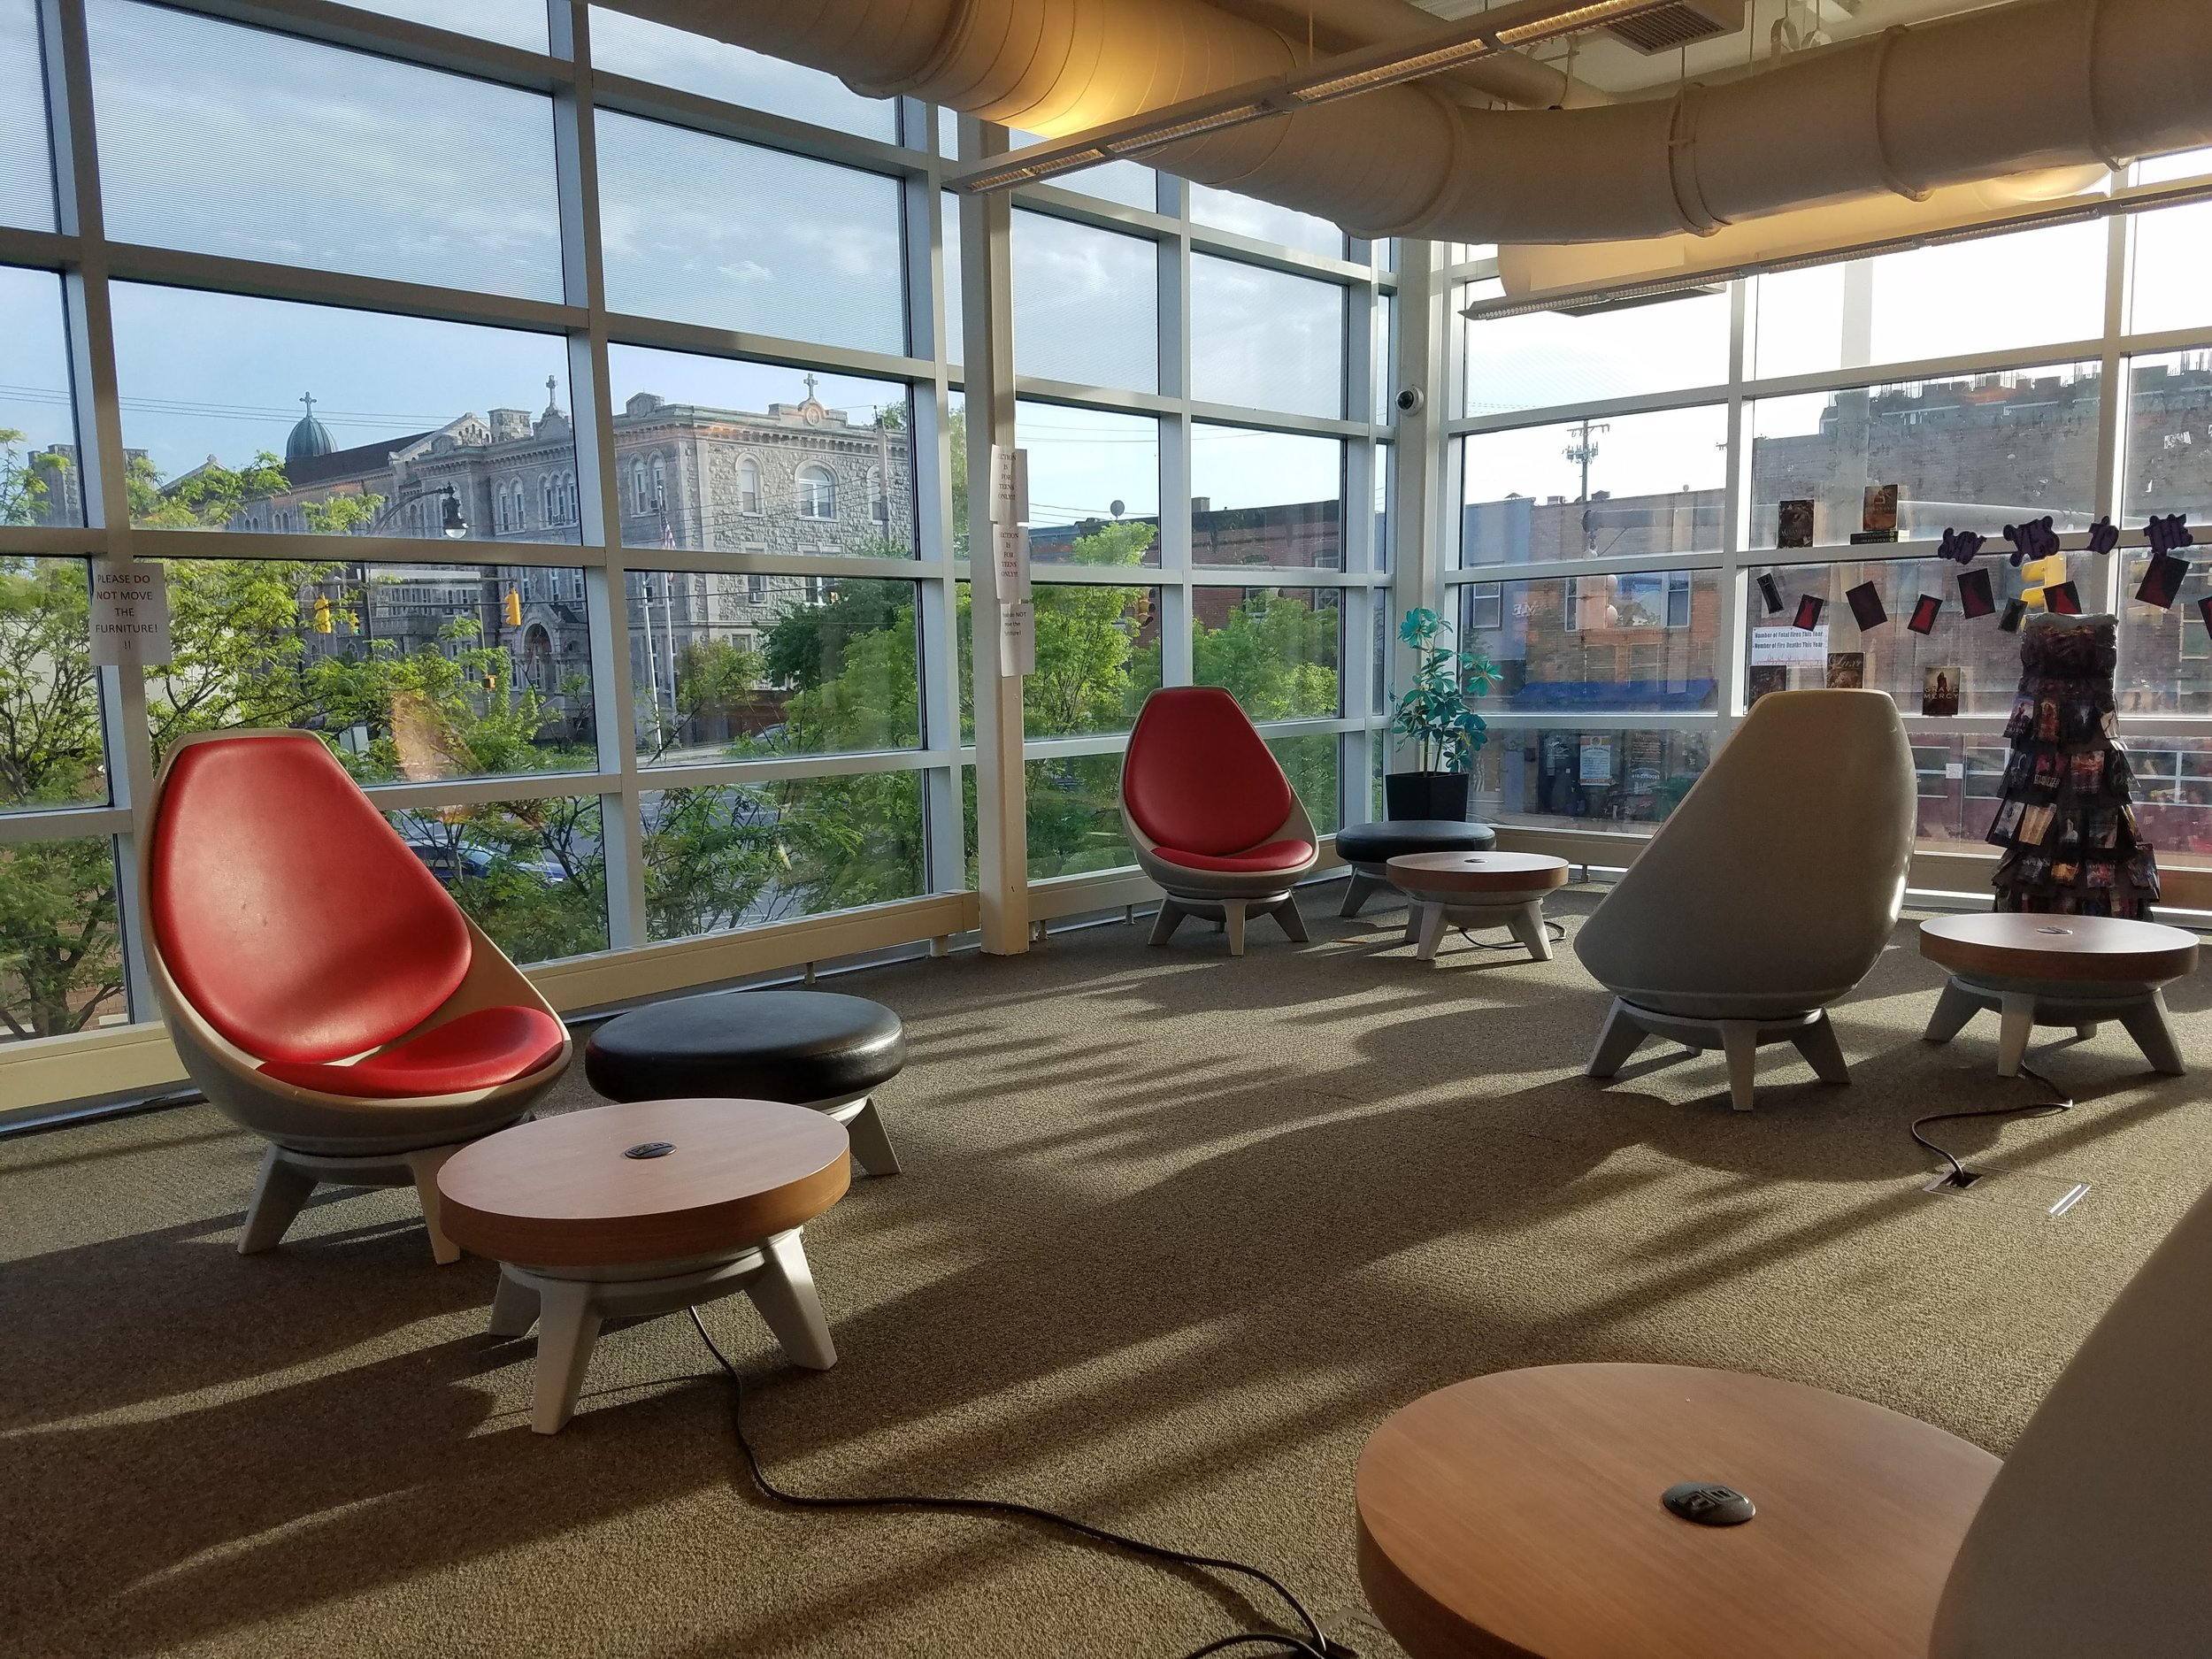 One of the many sweet seating areas at the Southeast Anchor Branch